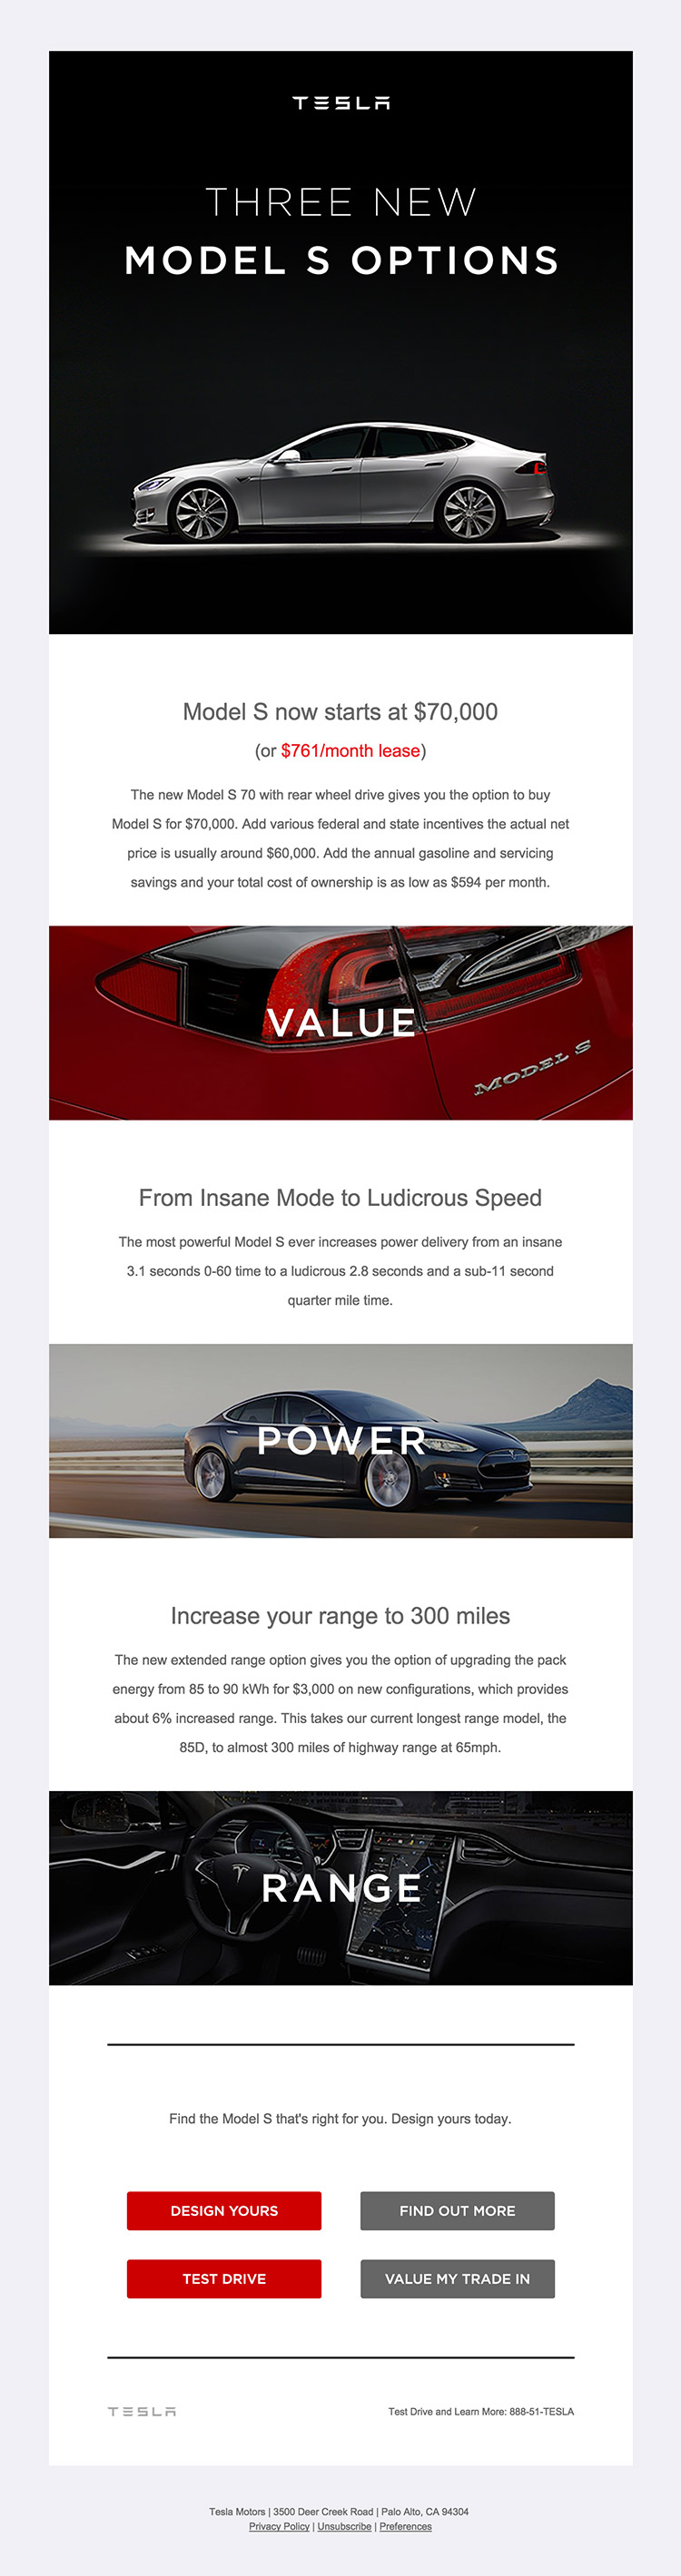 Tesla Model S Choices email design